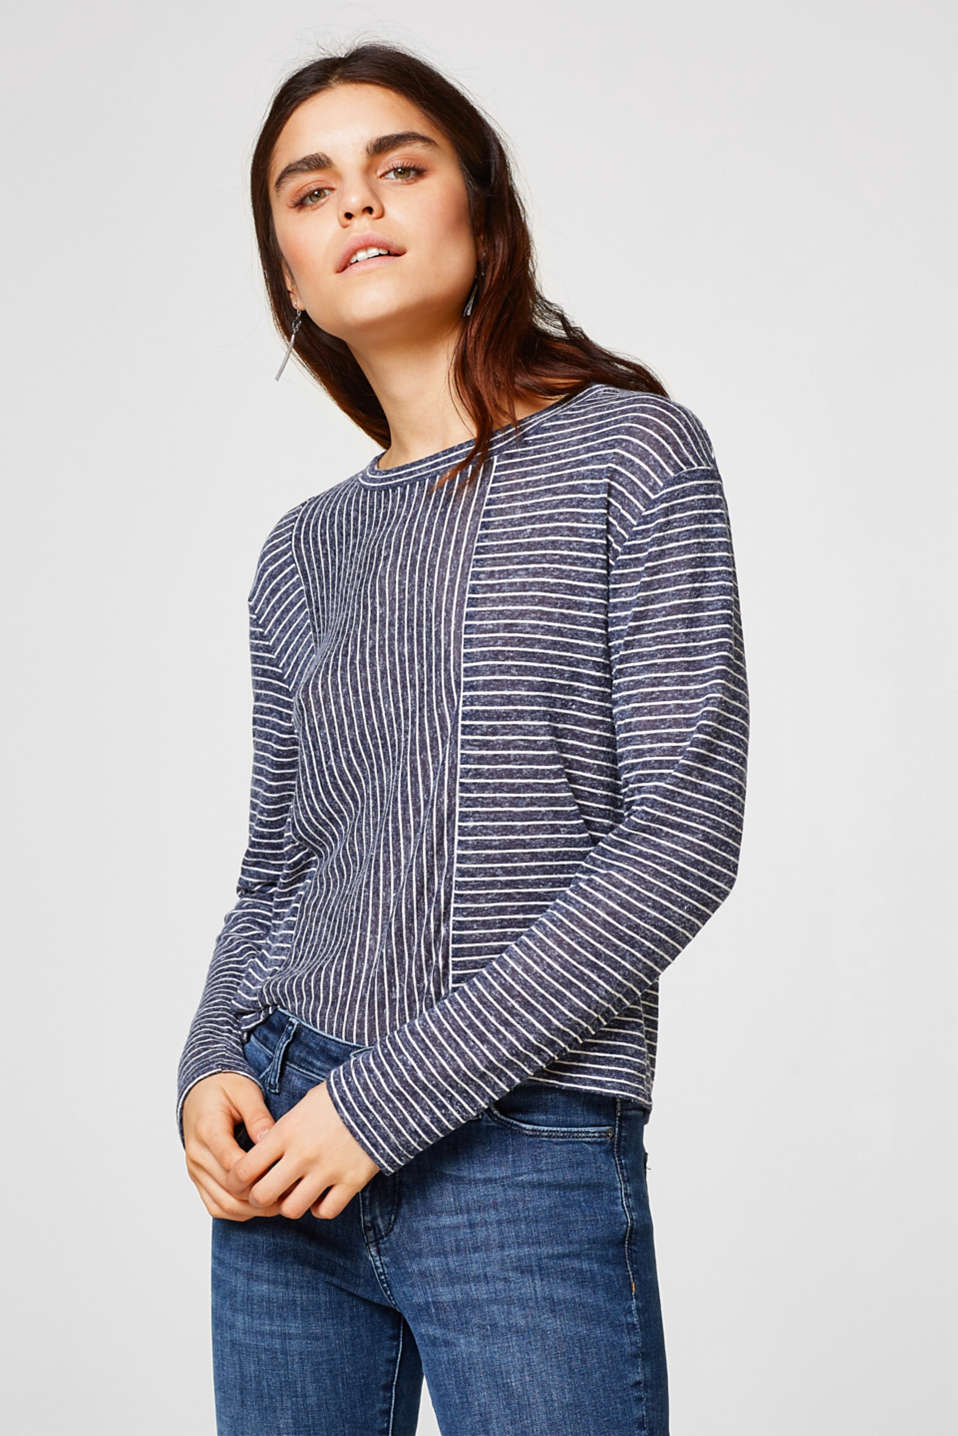 Esprit - Airy, boxy long sleeve top + mixed stripes